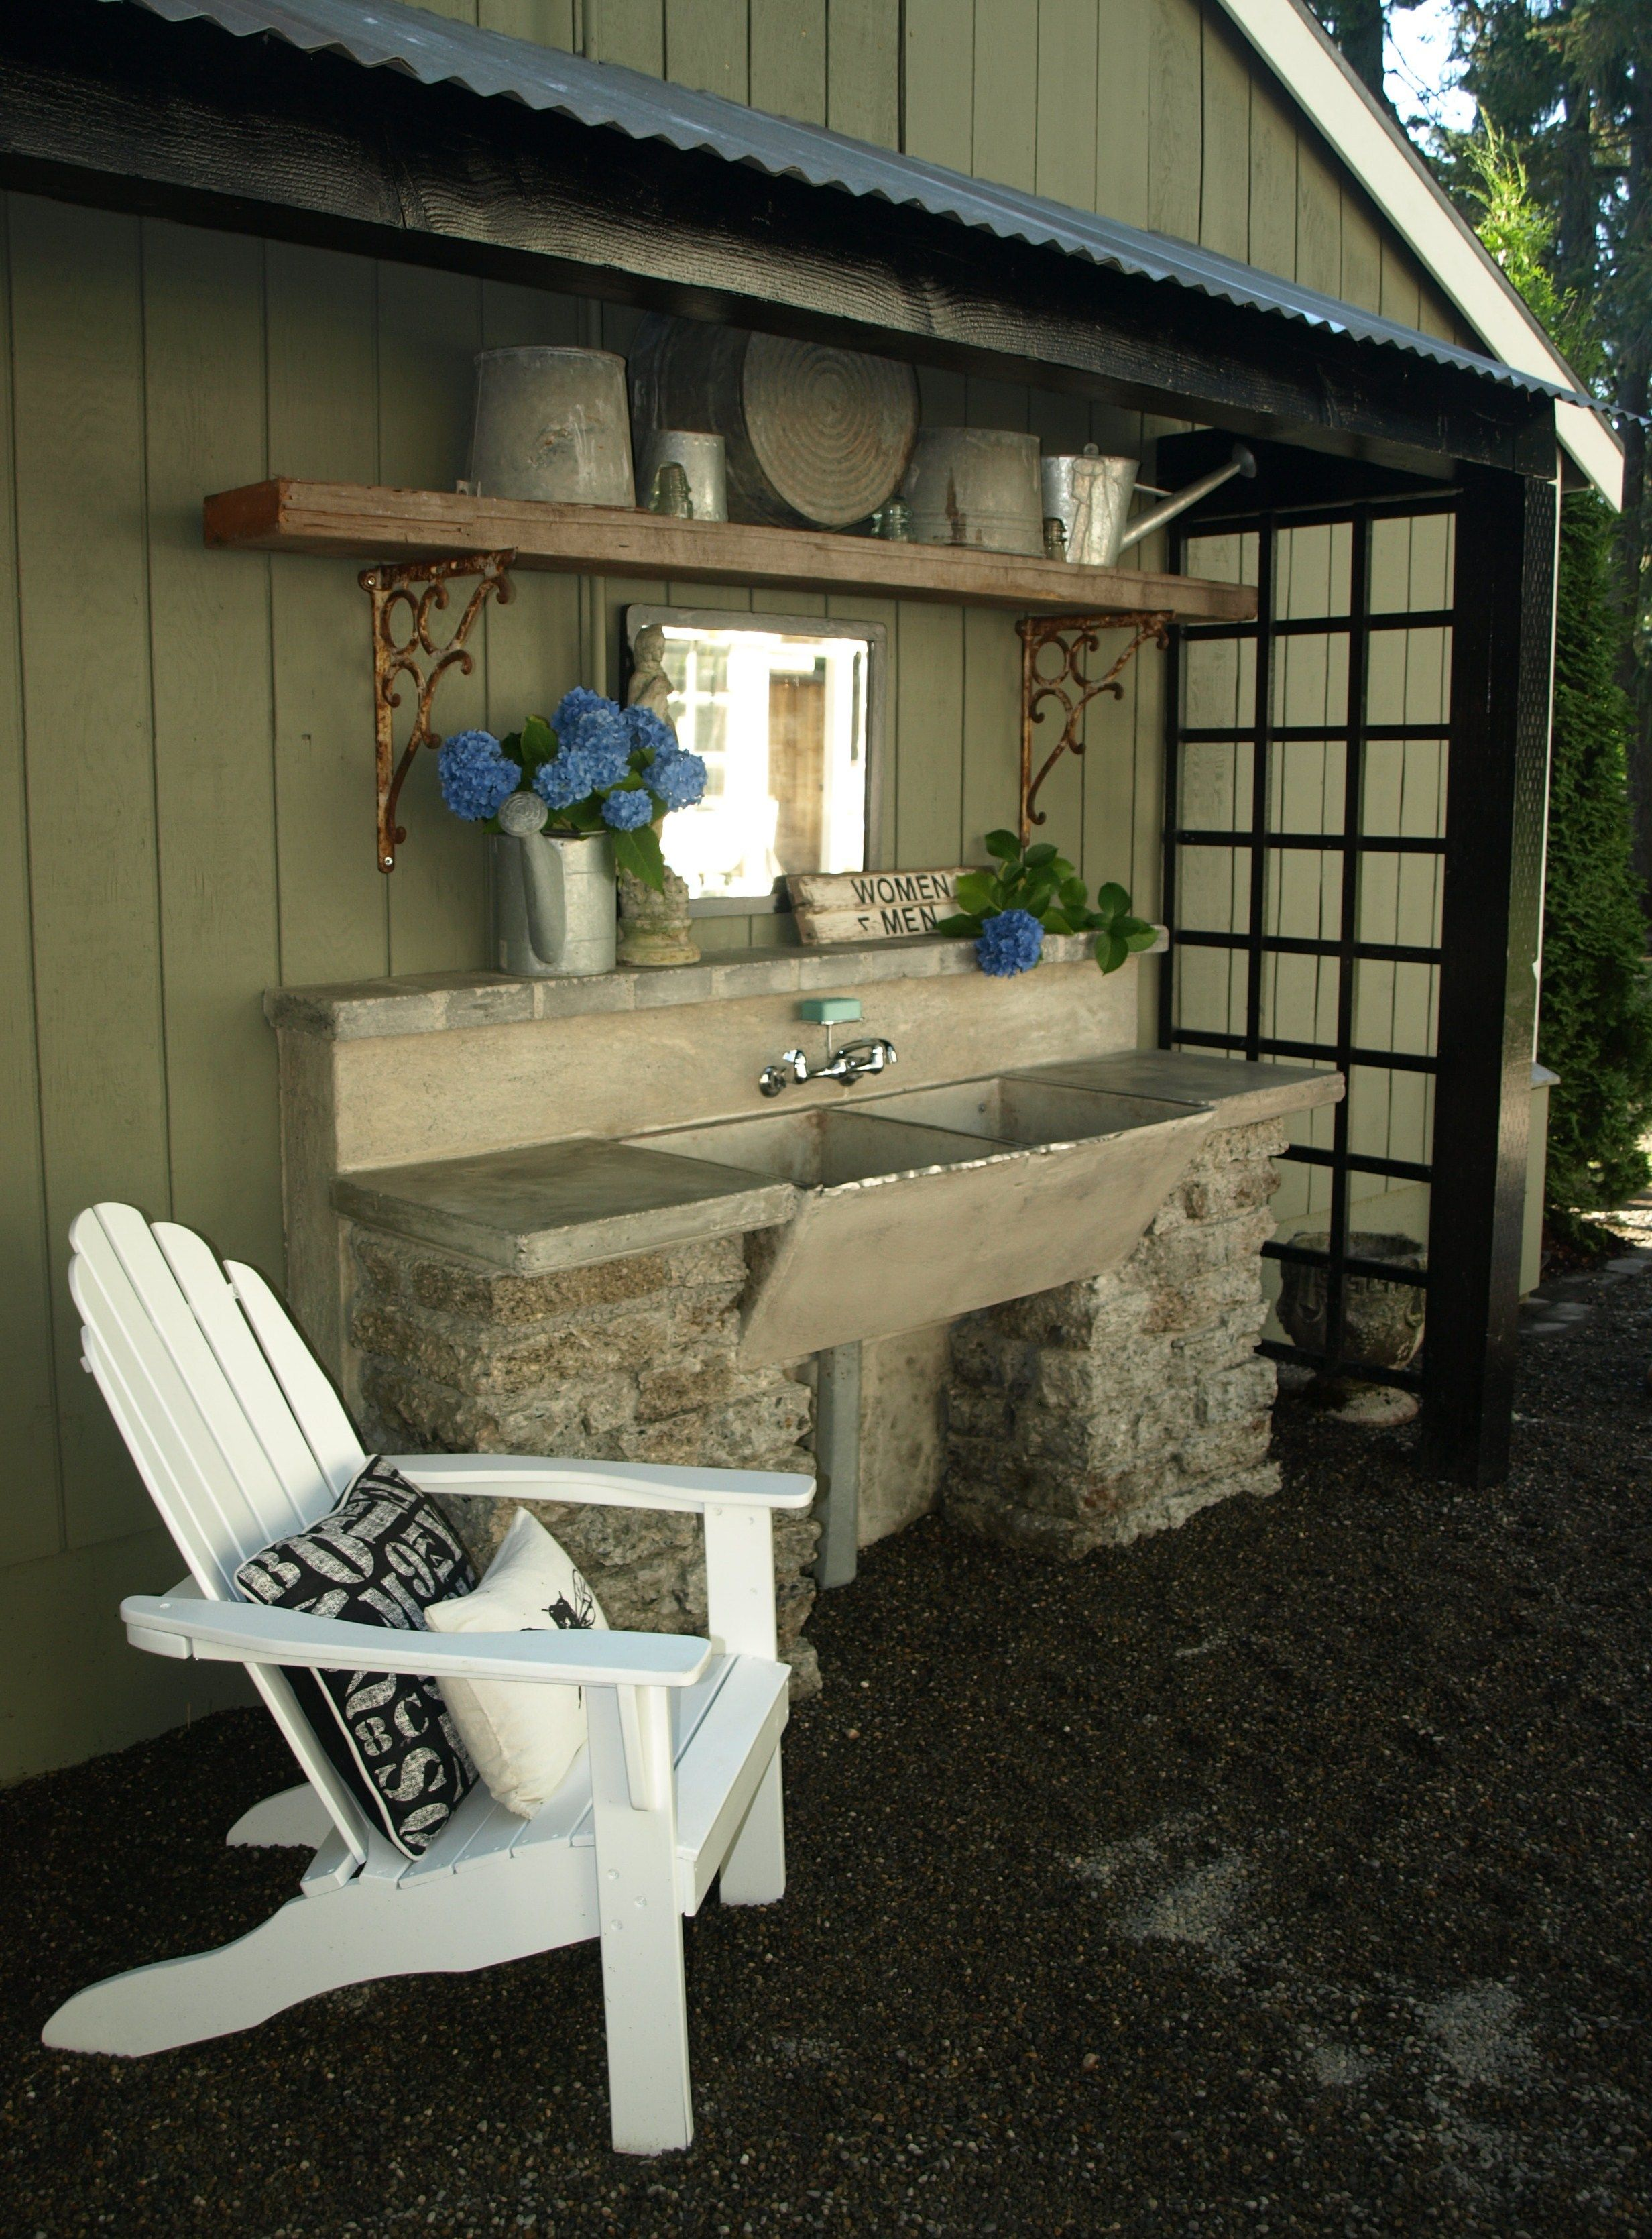 Our Outdoor Garden Sink With Hot And Cold Running Water